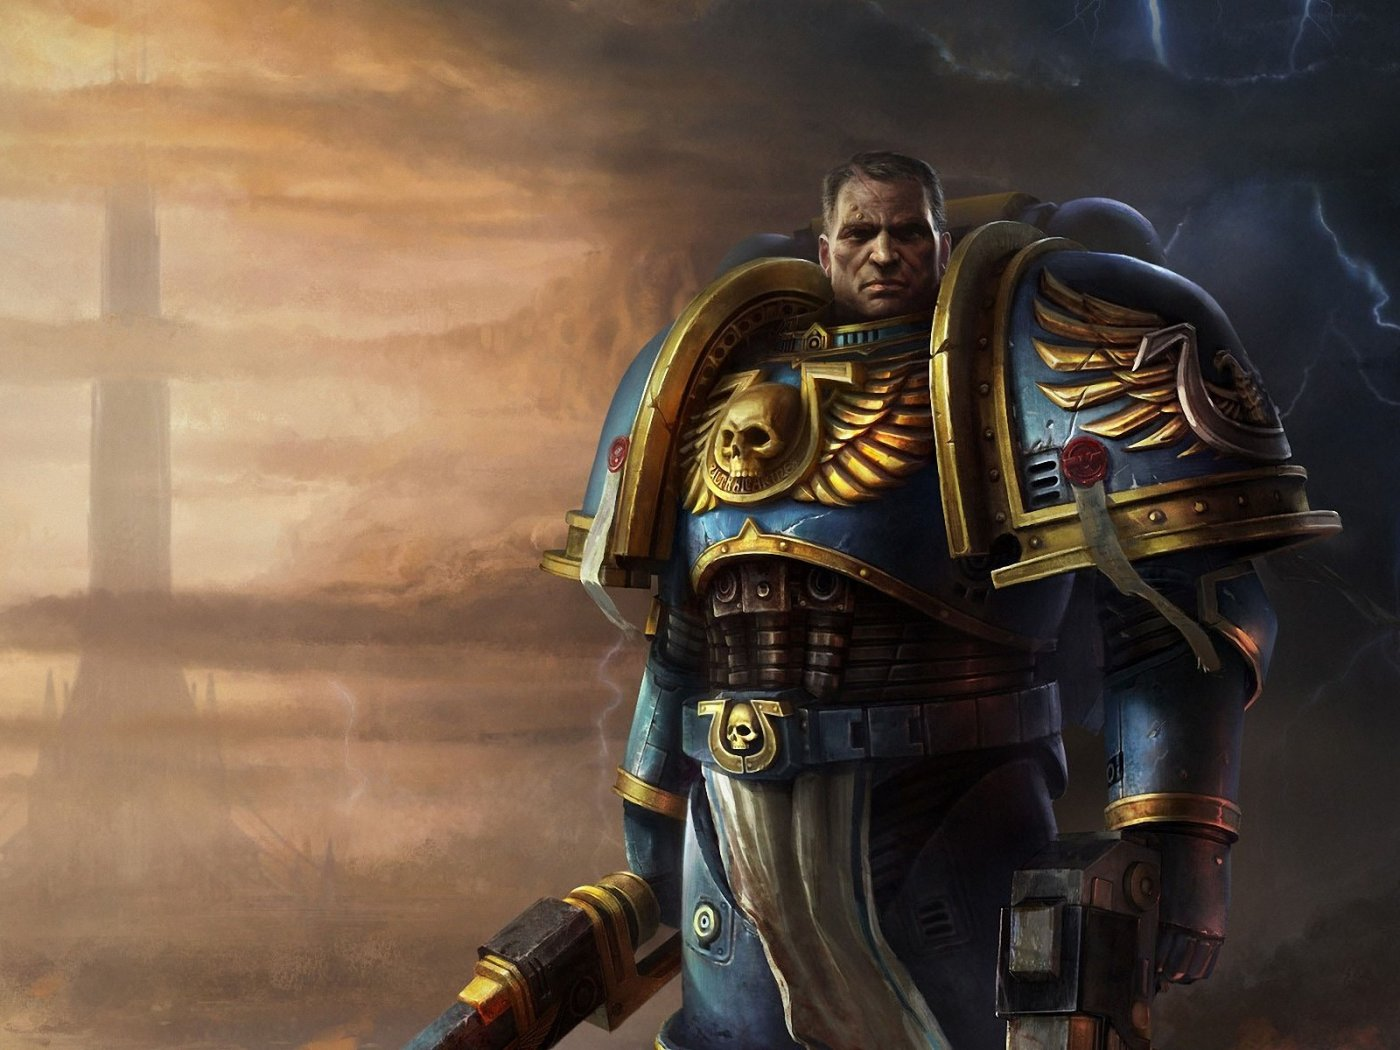 Warhammer 40K Space Marine 1400x1050 Wallpapers 1400x1050 Wallpapers 1400x1050